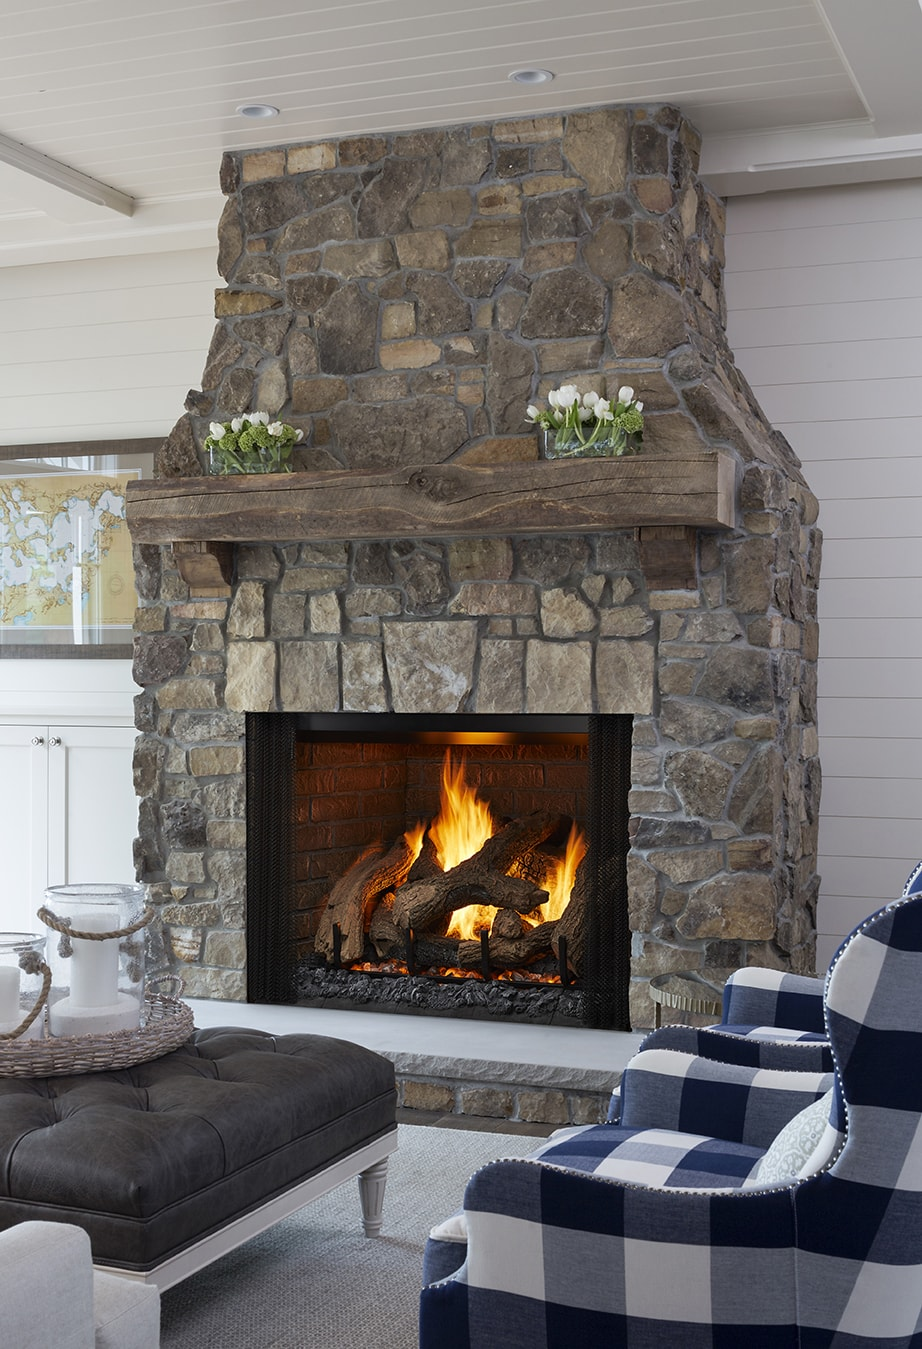 Heat and Glo Fireplace Insert Lovely Unique Fireplace Idea Gallery